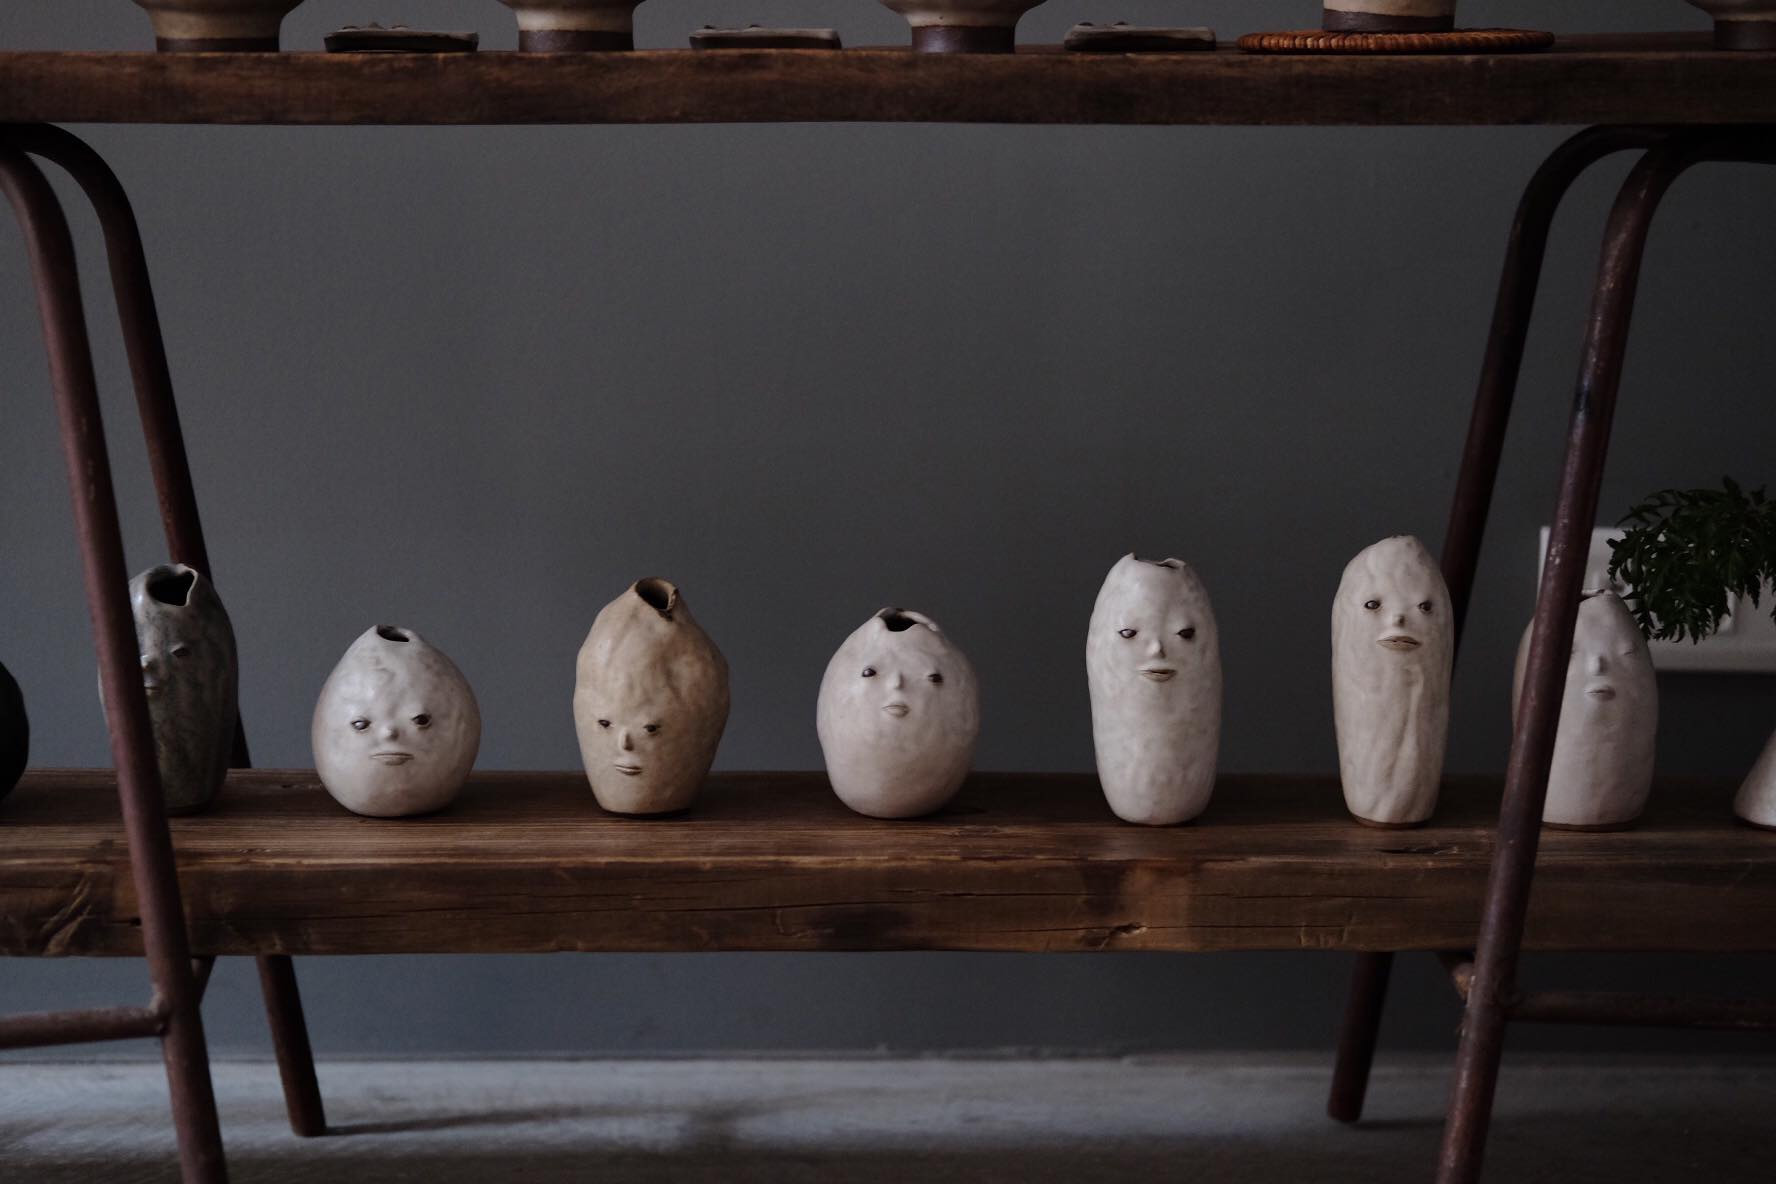 Faces Emerge from Minimalist Ceramics by Fan Yanting to Consider Emotional Depth